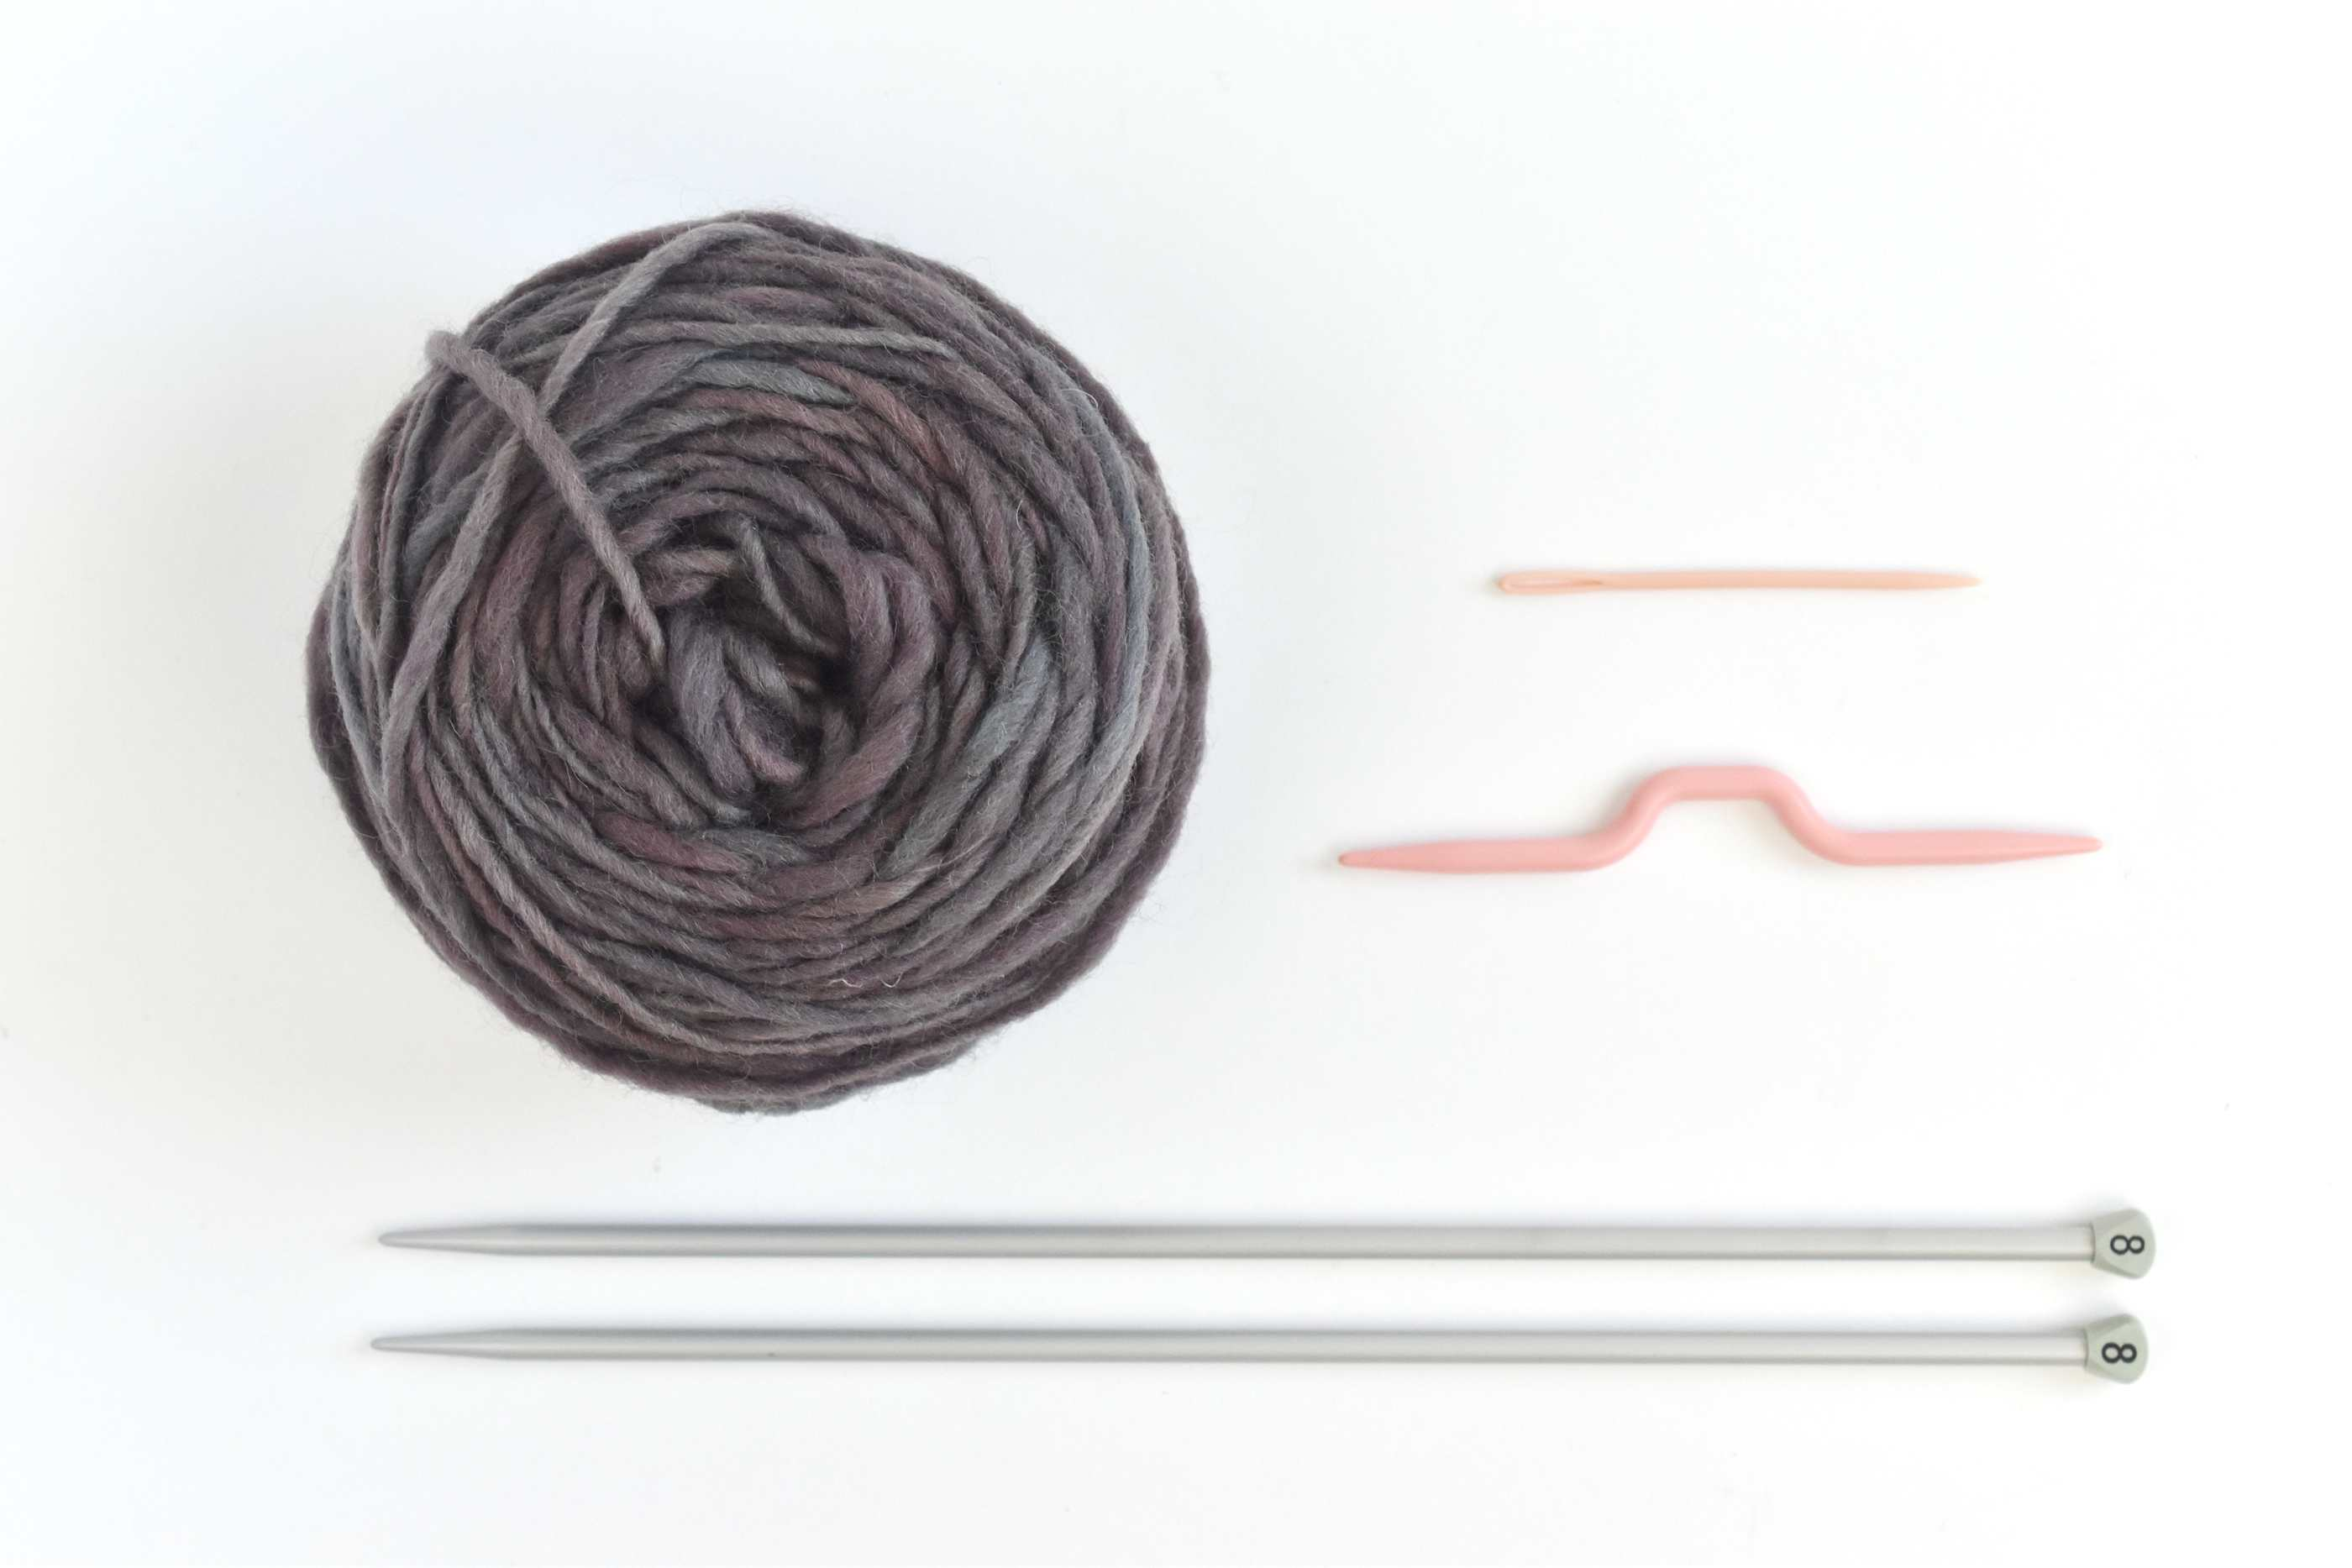 Cable Knit Headband Supplies